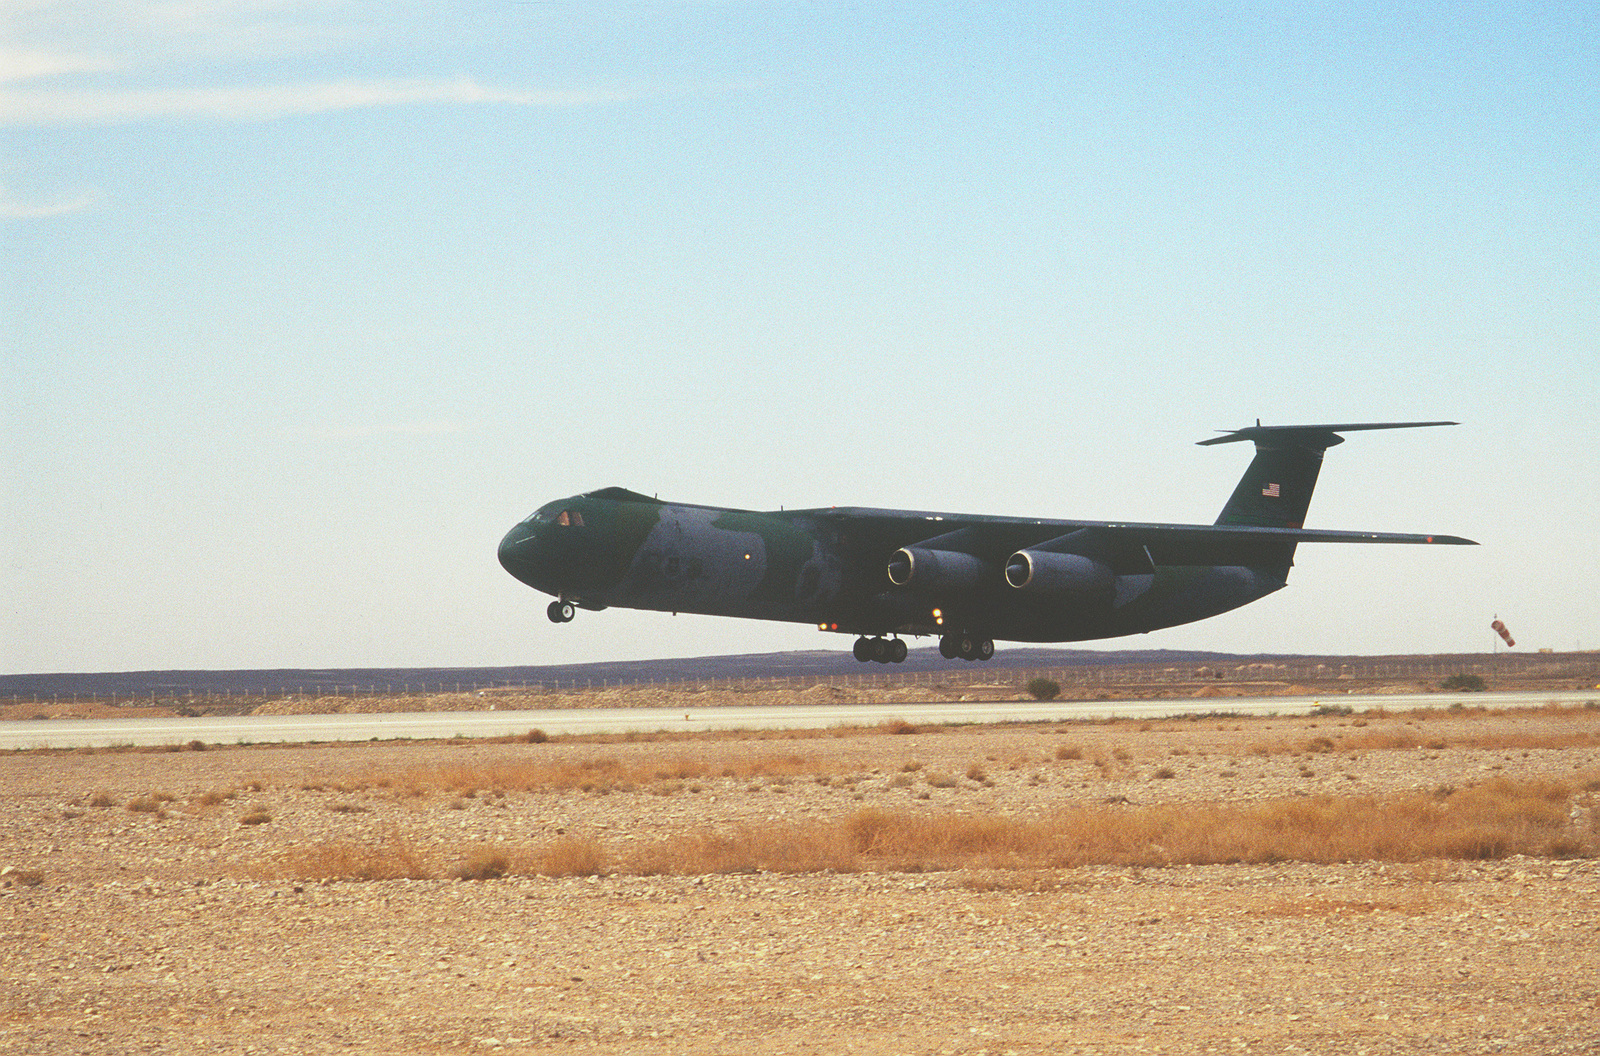 A C-141B aircraft from McChord Air Force Base, Washington is about to land at an airfield in Jordan. The aircraft is carrying cargo and personnel that are participating in the Air Power Expeditionary Force that is taking place in the country of Jordan. An ancillary mission of the Force is to assist US Air Force and other multinational forces operating in Saudi Arabia and other nearby countries patrol the no-fly zone over southern Iraq